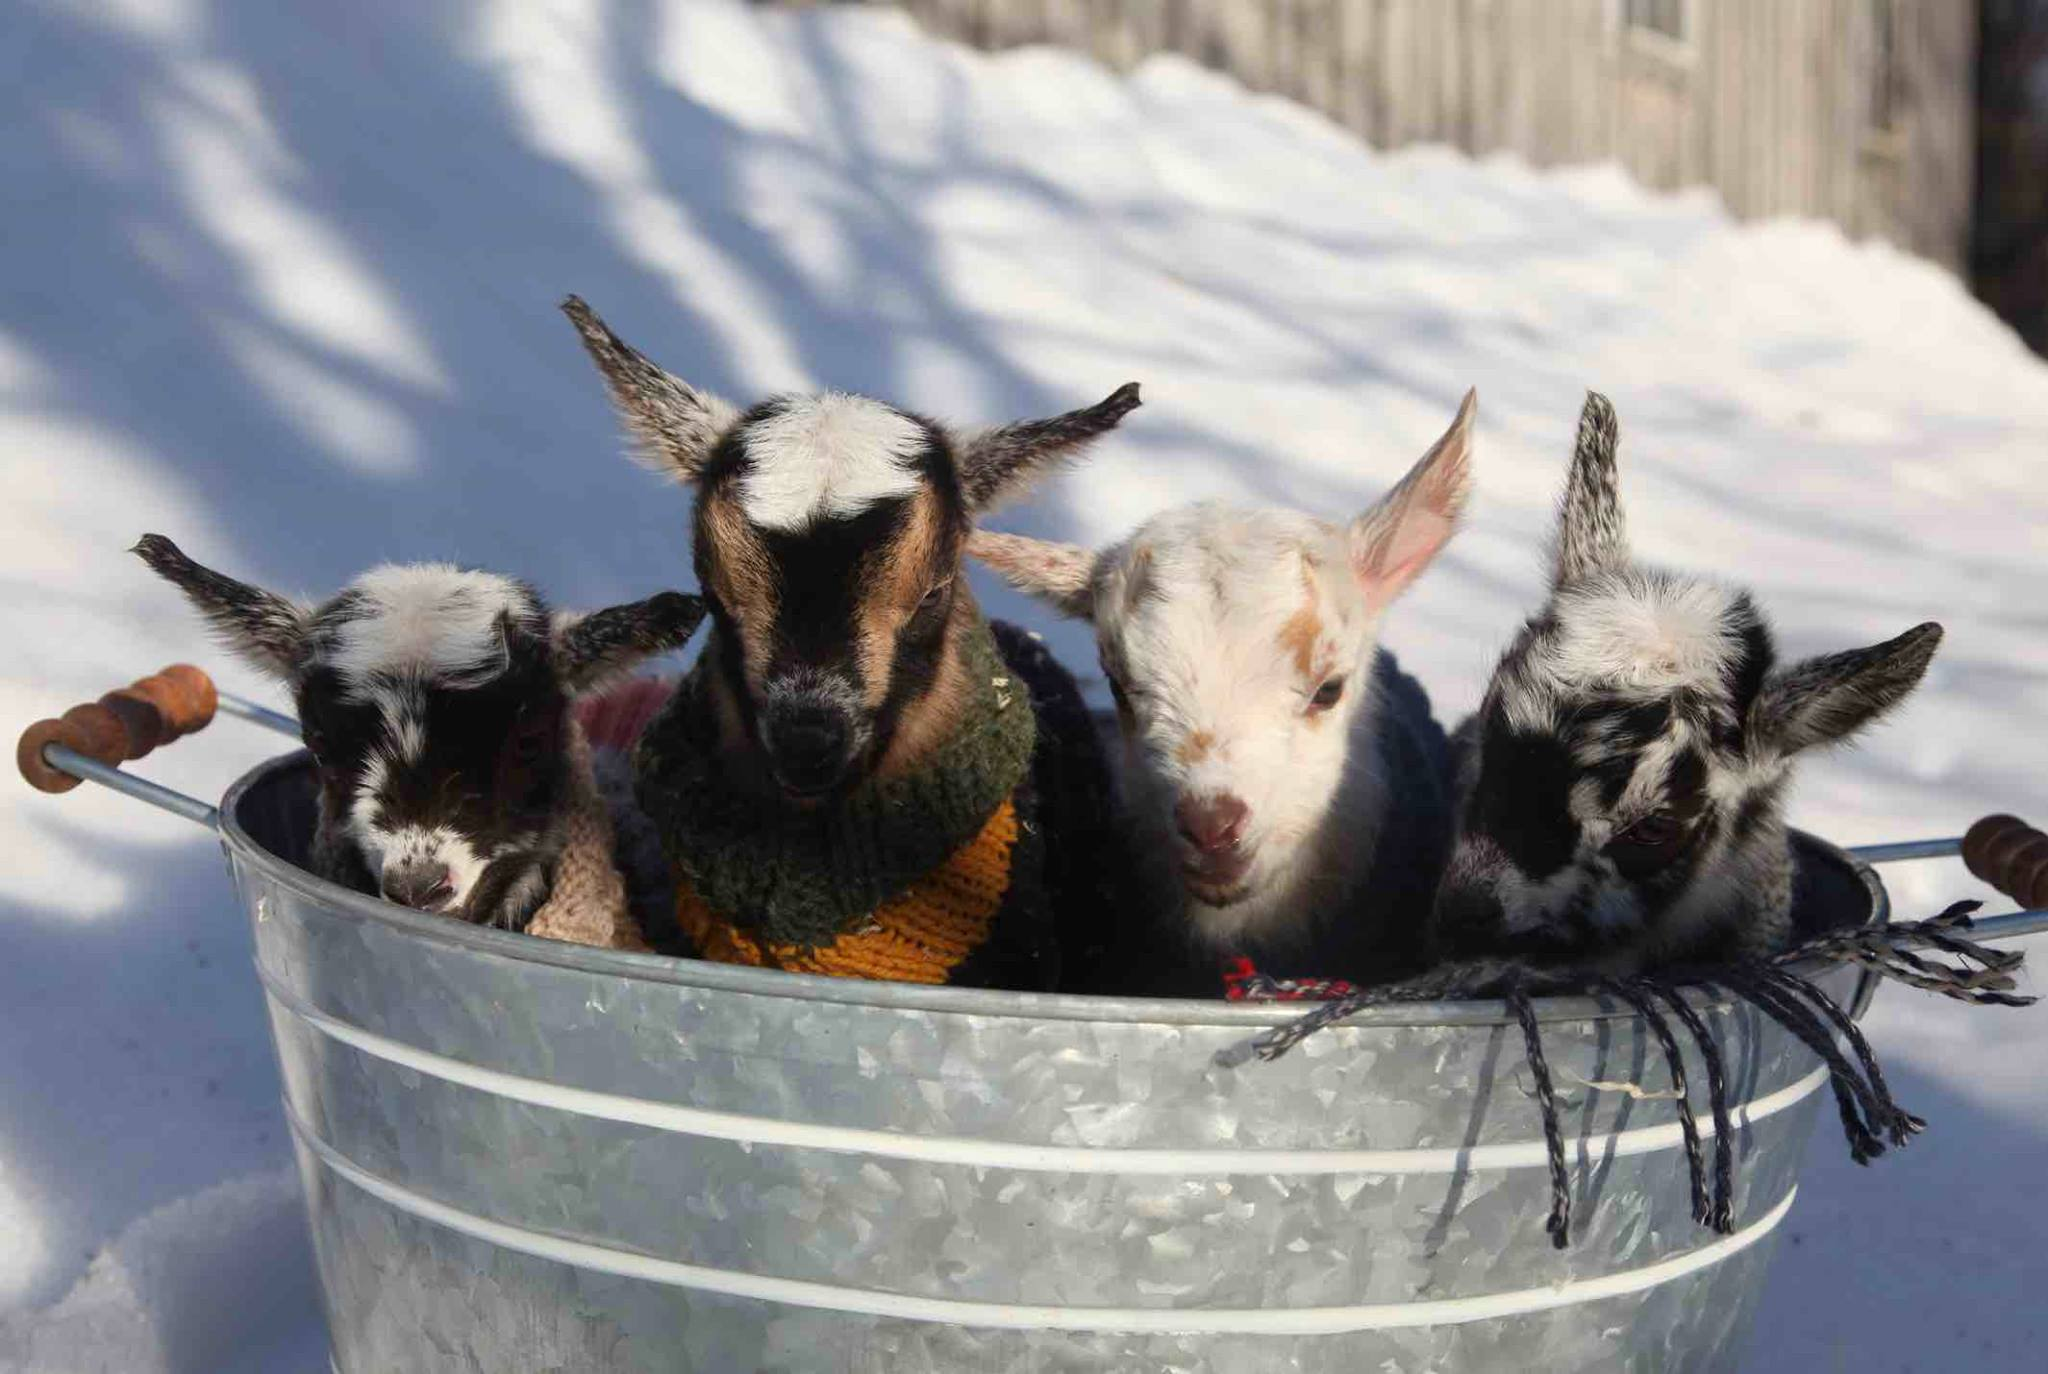 Baby Goats in a Bucket